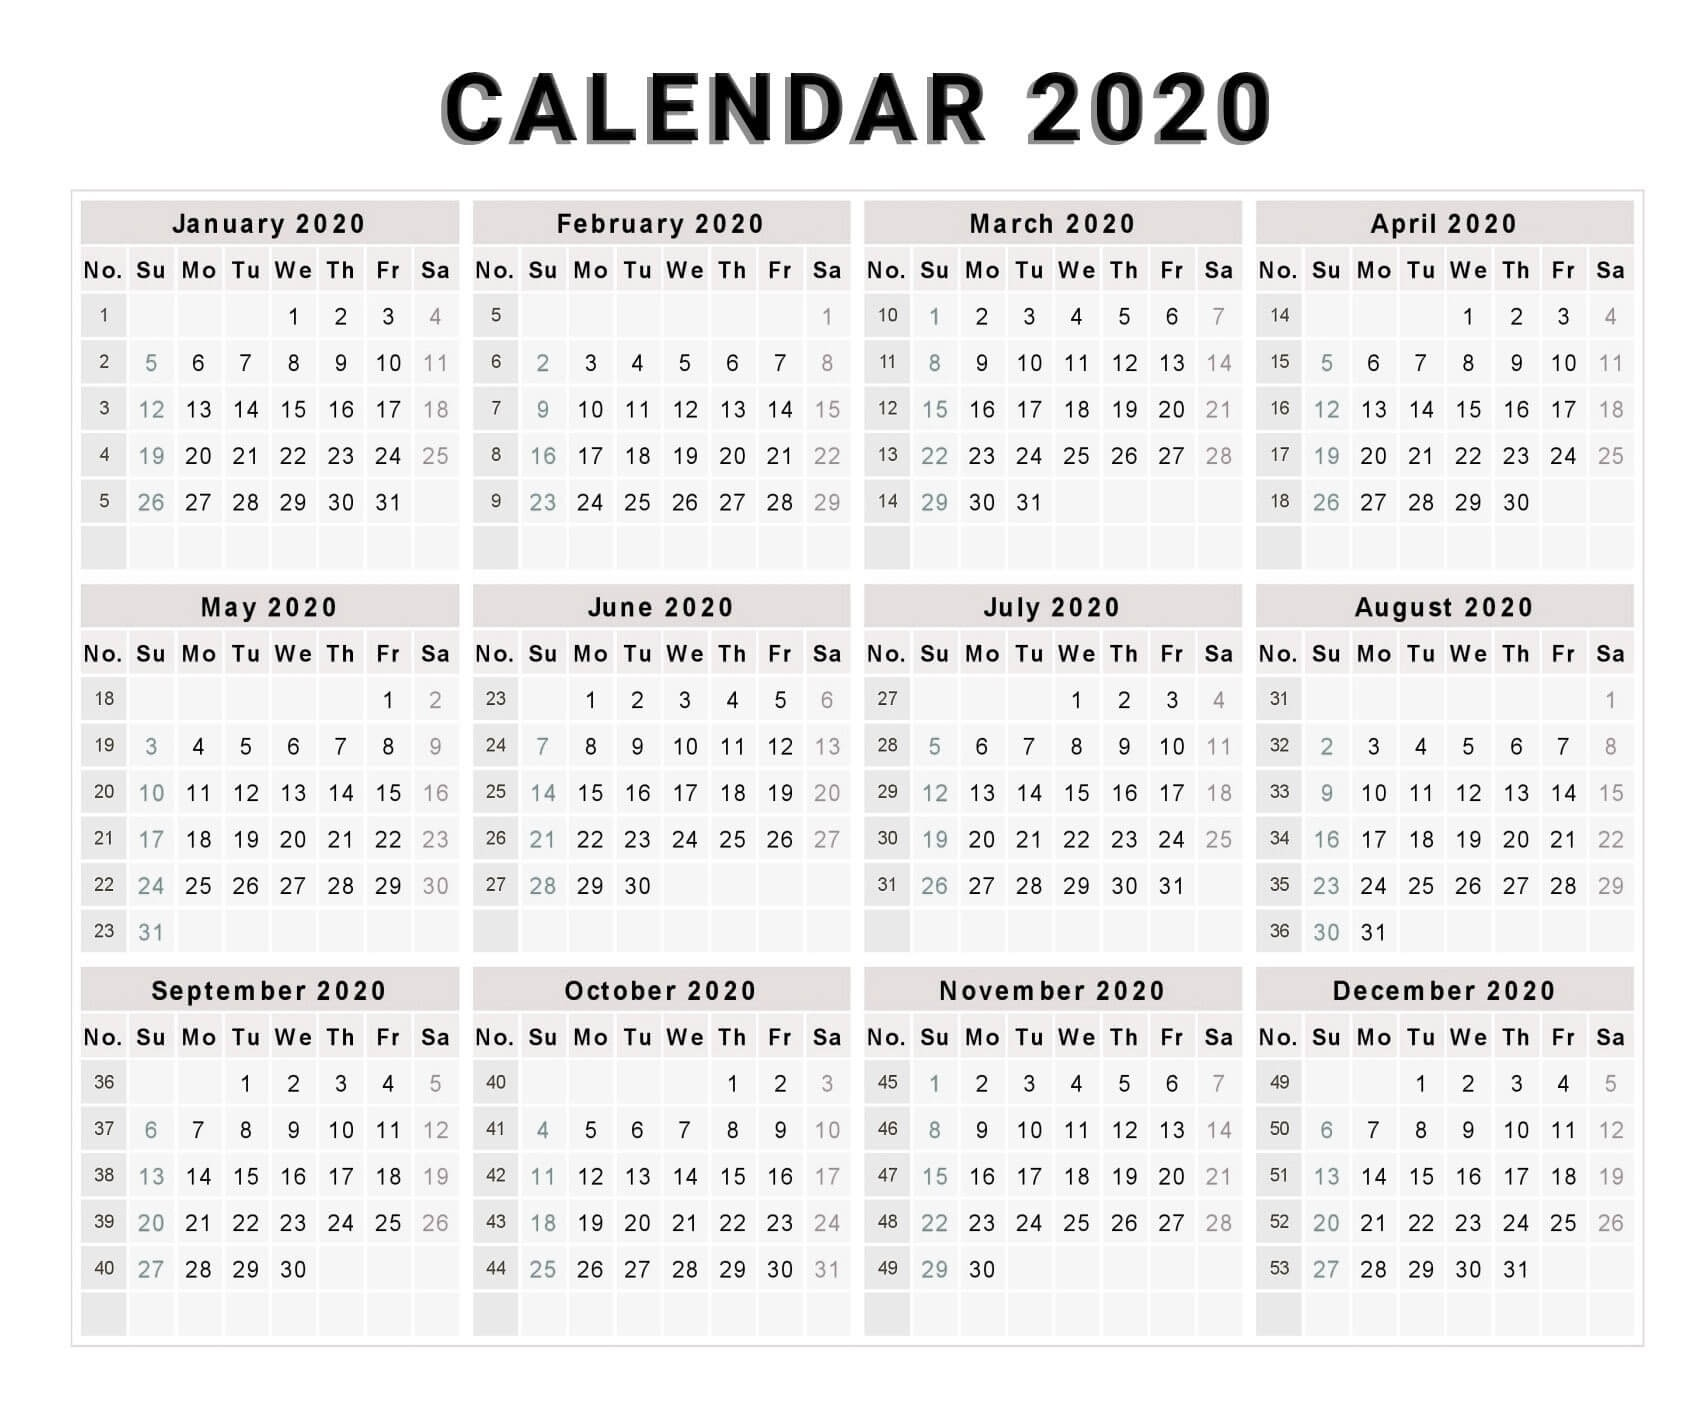 Yearly Calendar With Notes 2020 Pdf - 2019 Calendars For Year 2020 Calender - South Africa